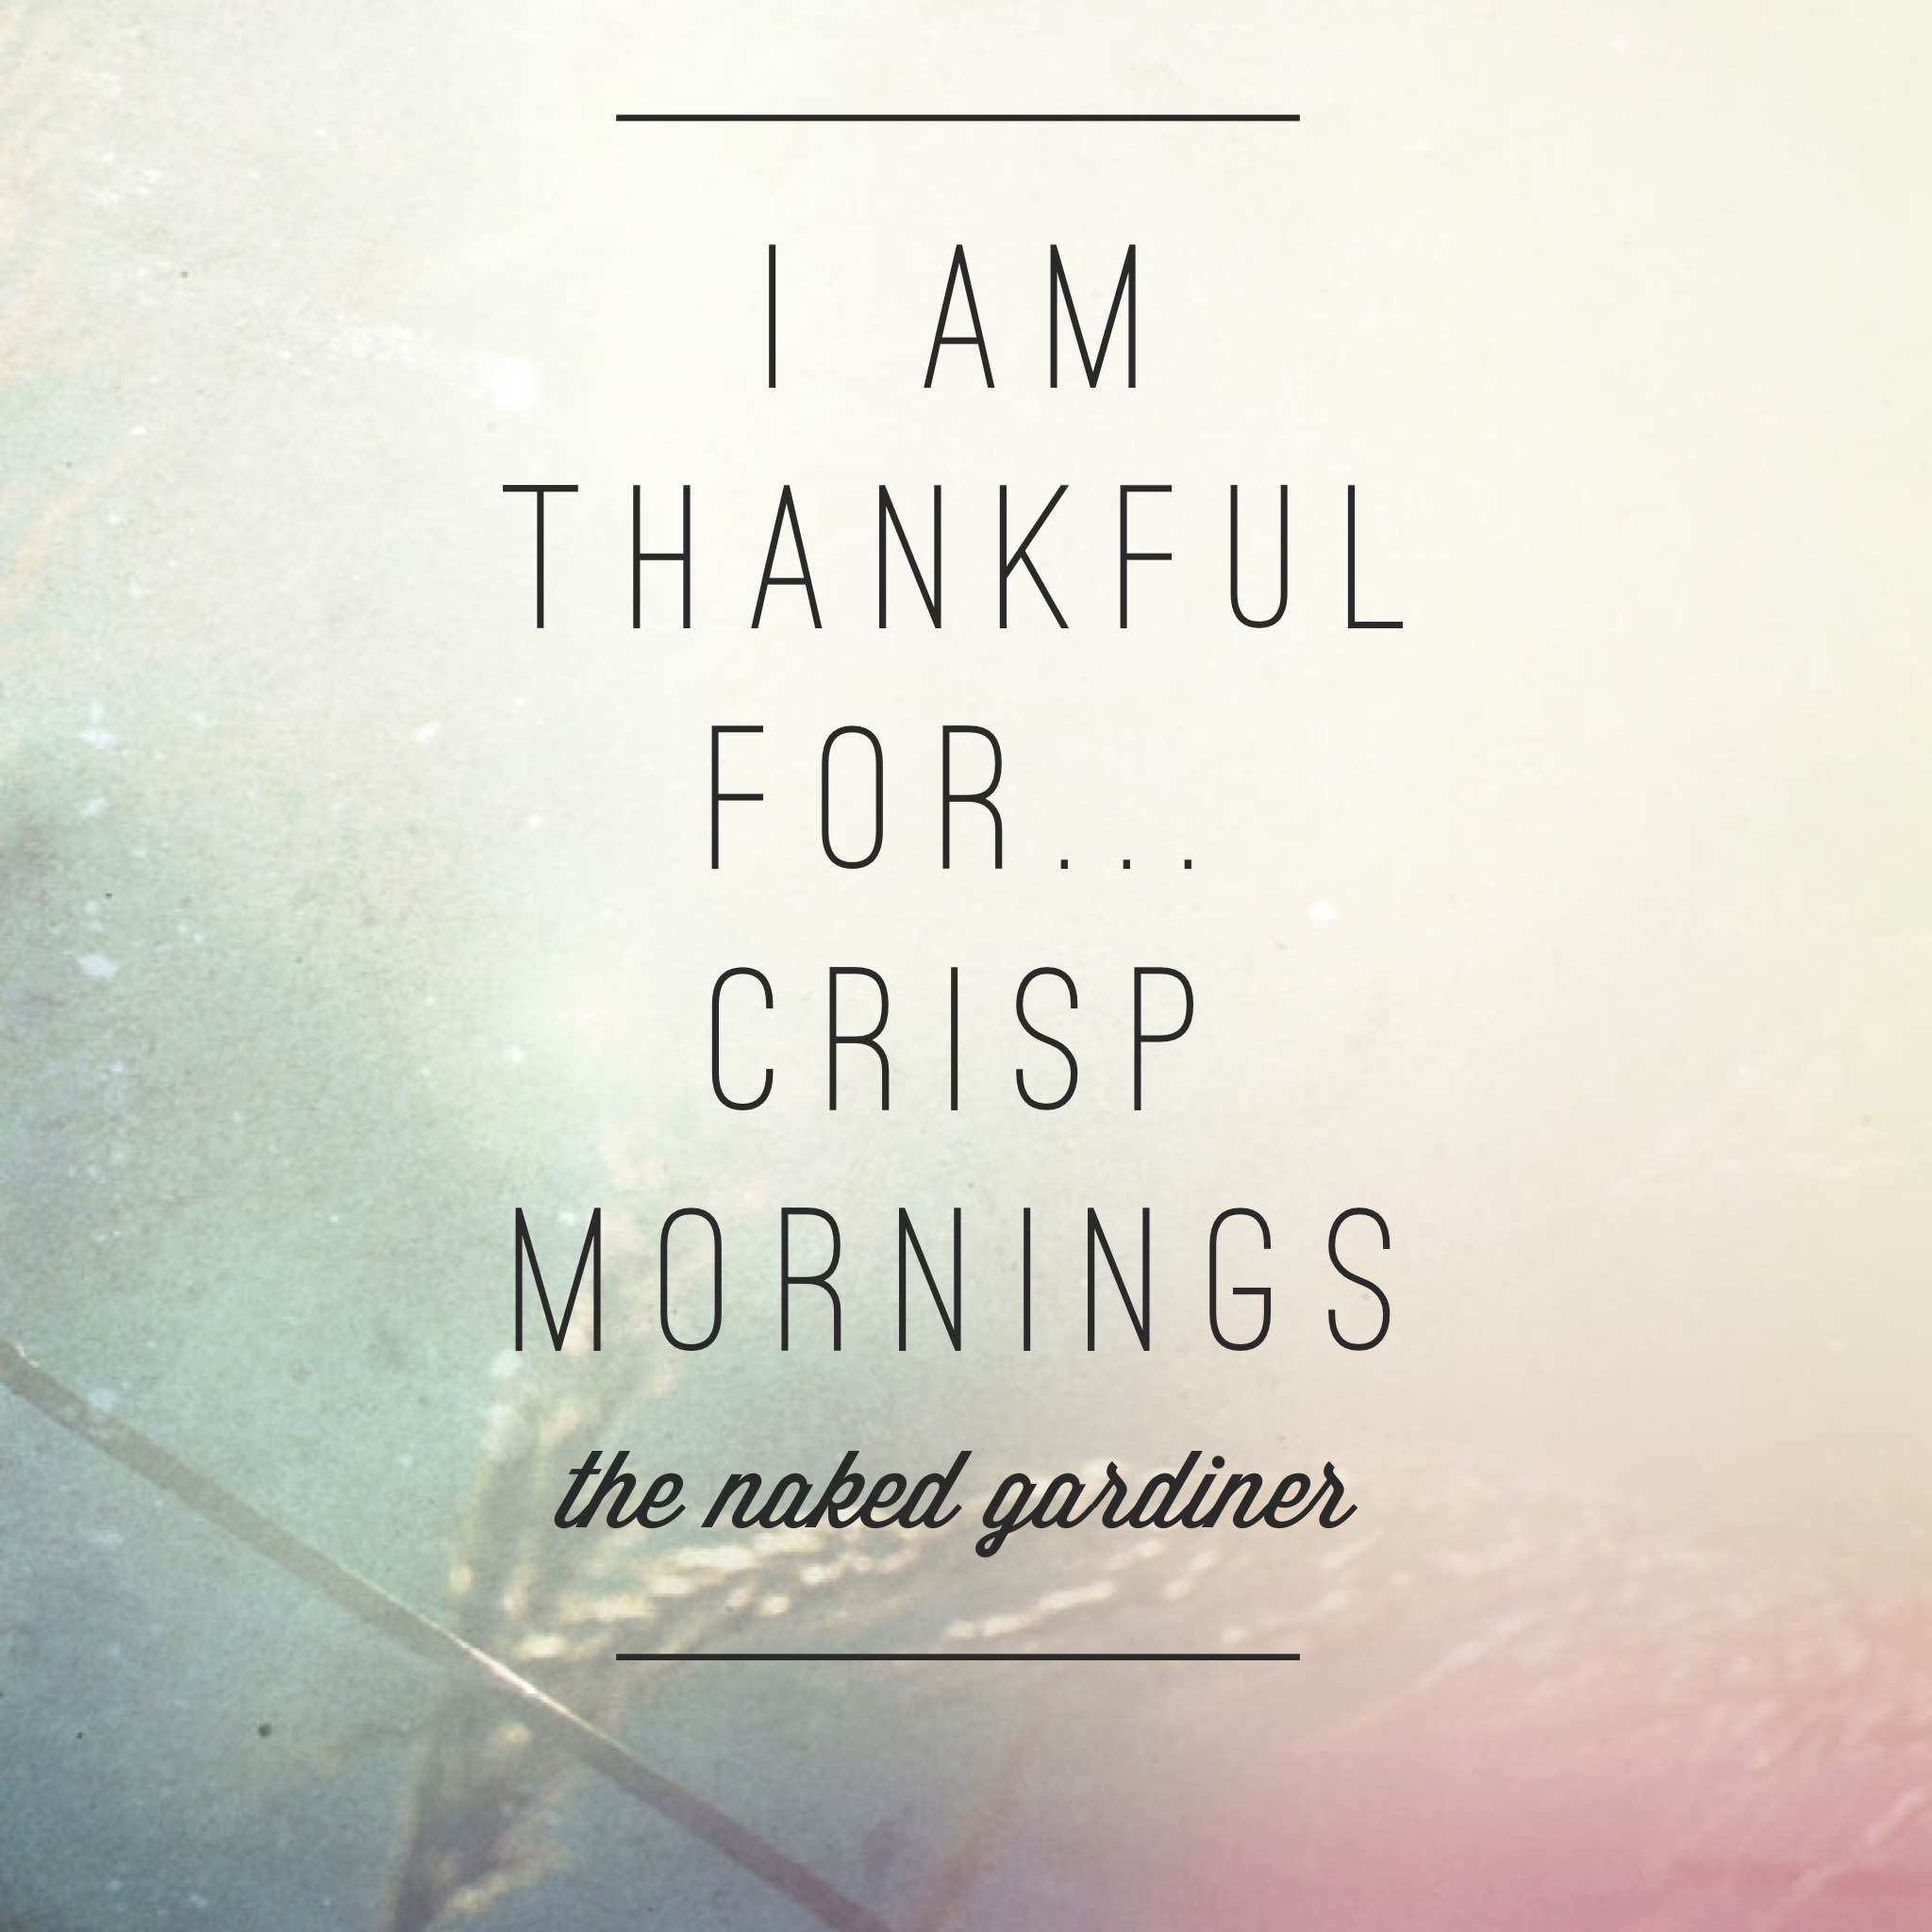 thanful-thursdays-crisp-mornings